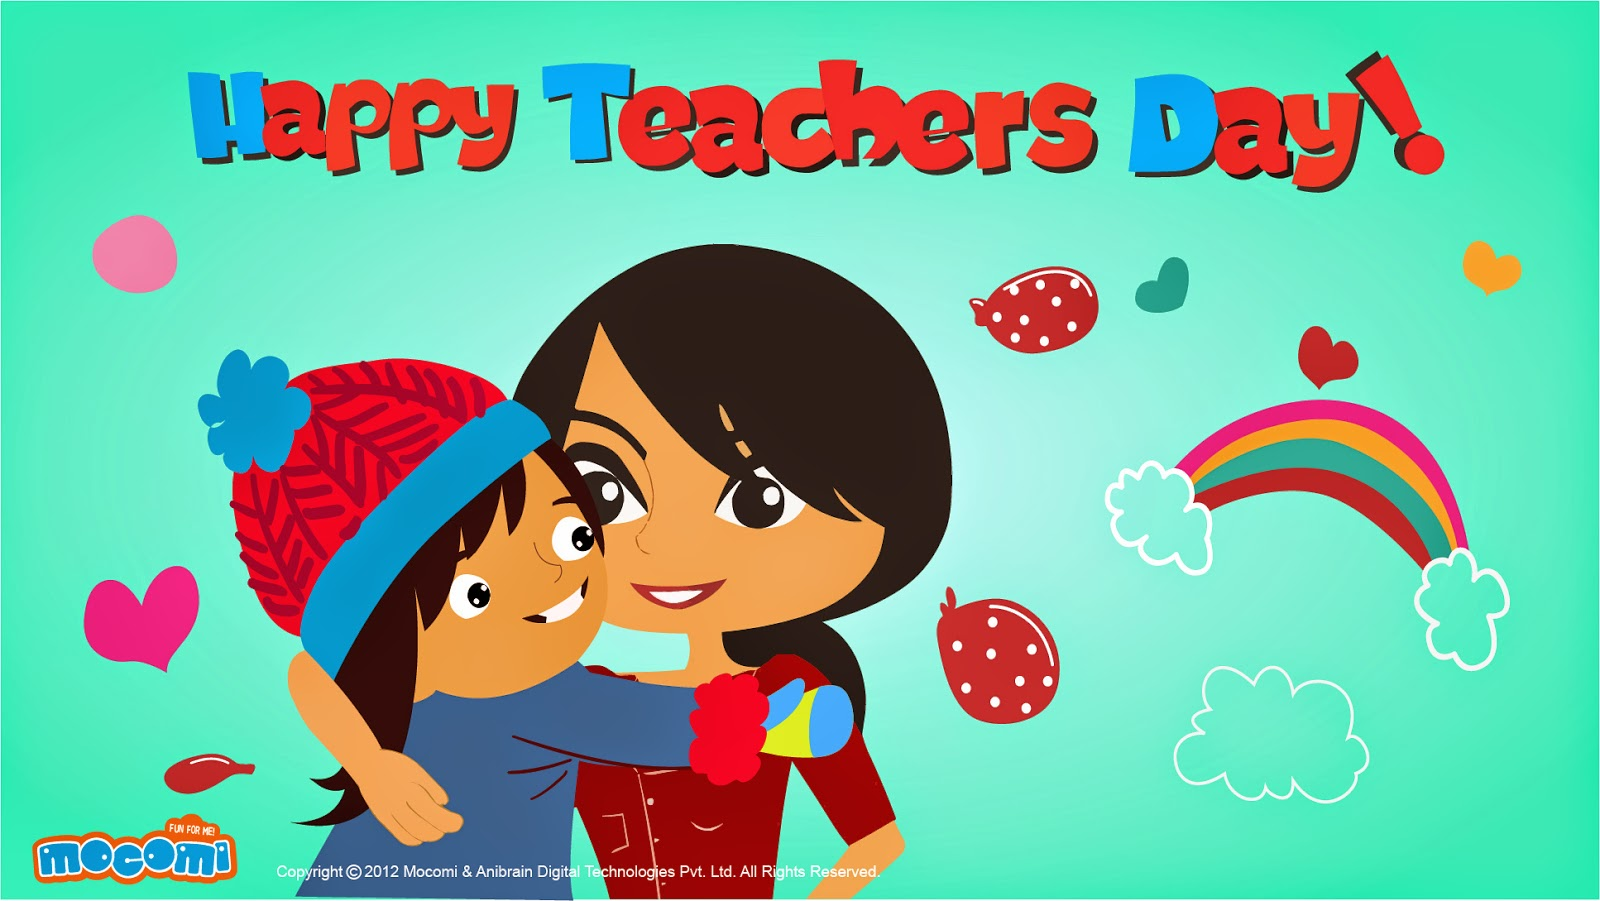 essay teachers day celebration school Teacher's day celebrations take  and reverence to your teachers celebrating teacher's day at school along with your friends  of the celebration is.